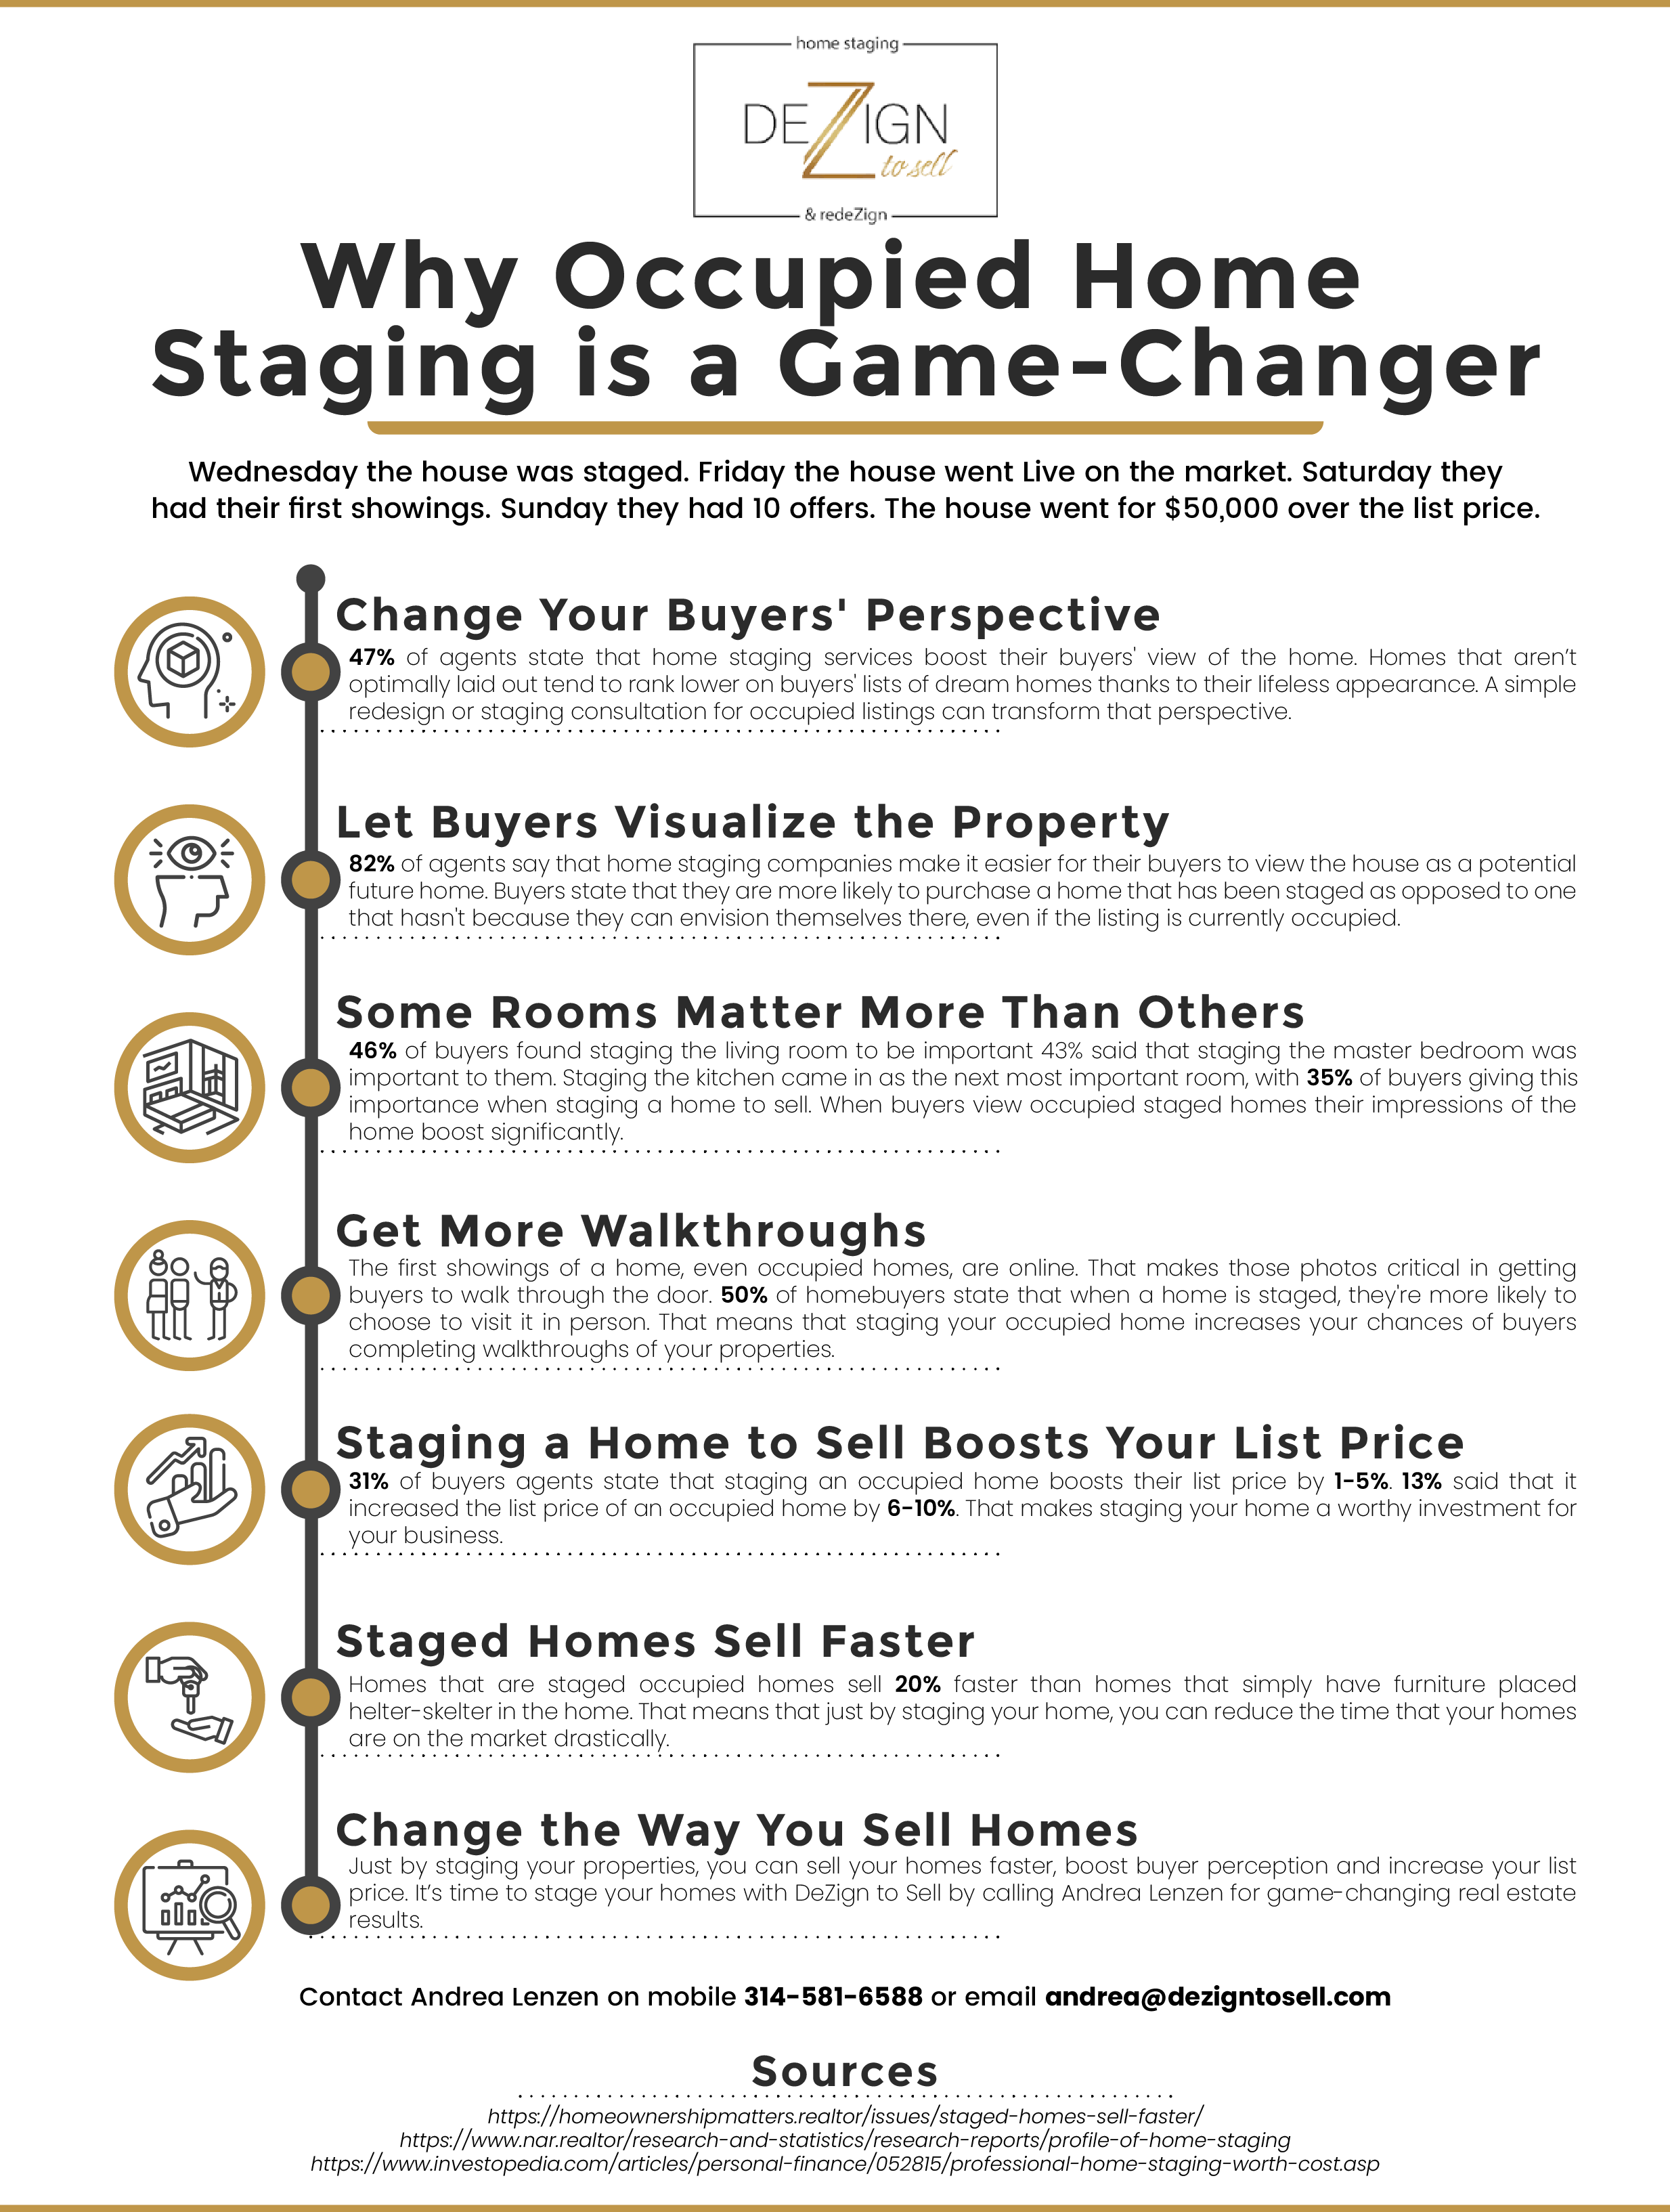 Why Occupied Home Staging is a Game-Changer! Share This With Your Clients